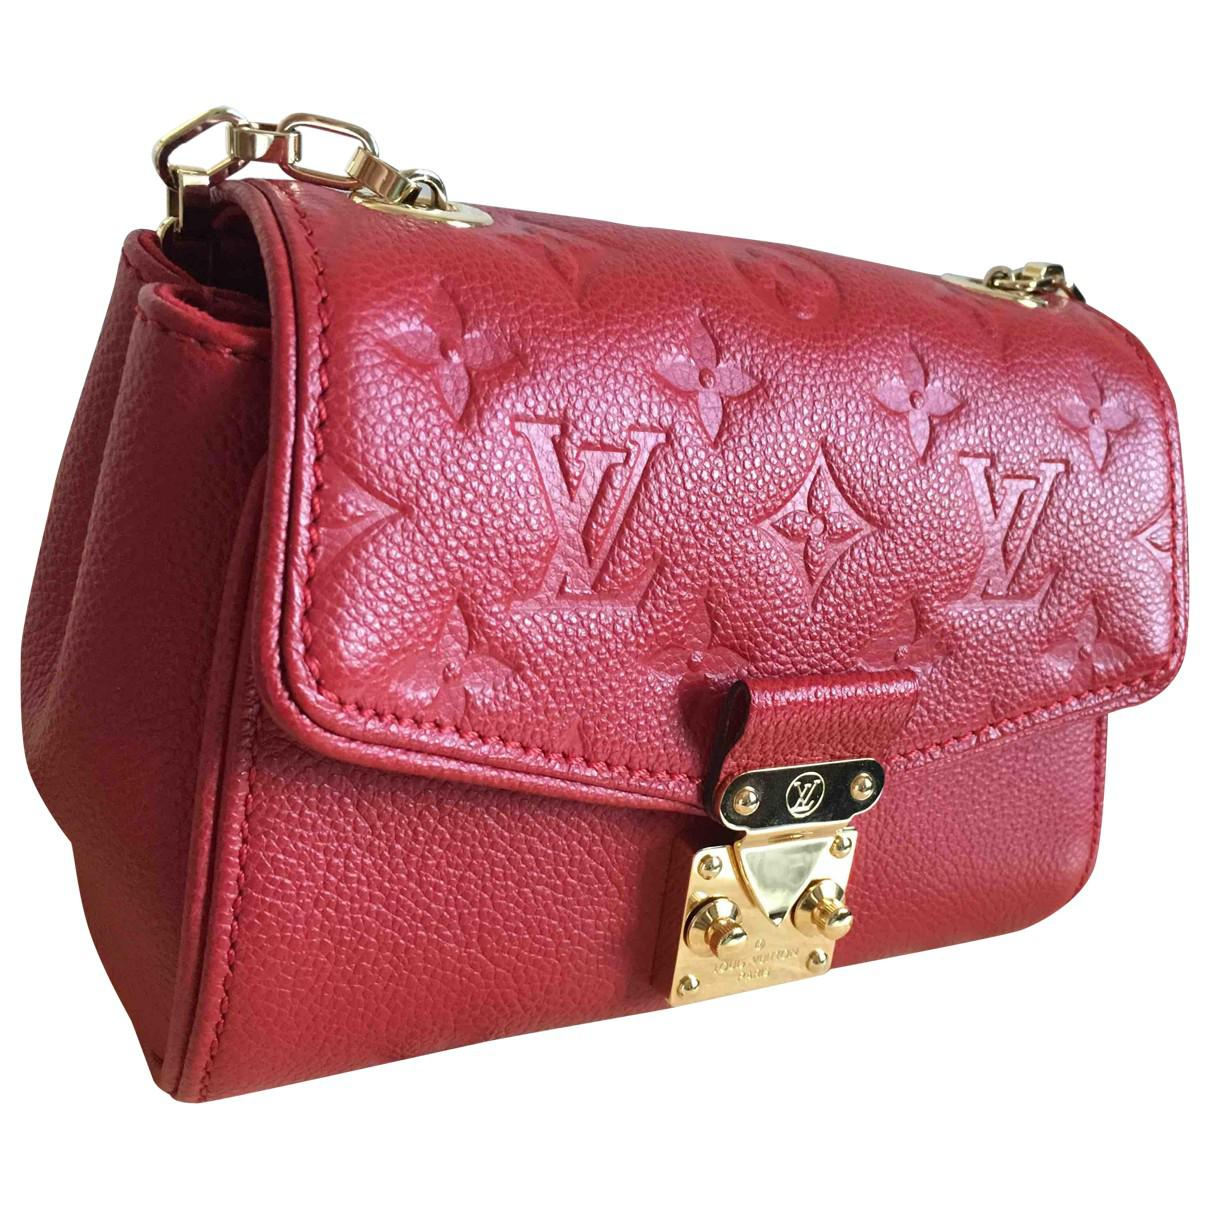 Pre-owned - Leather mini bag Louis Vuitton kZkp5